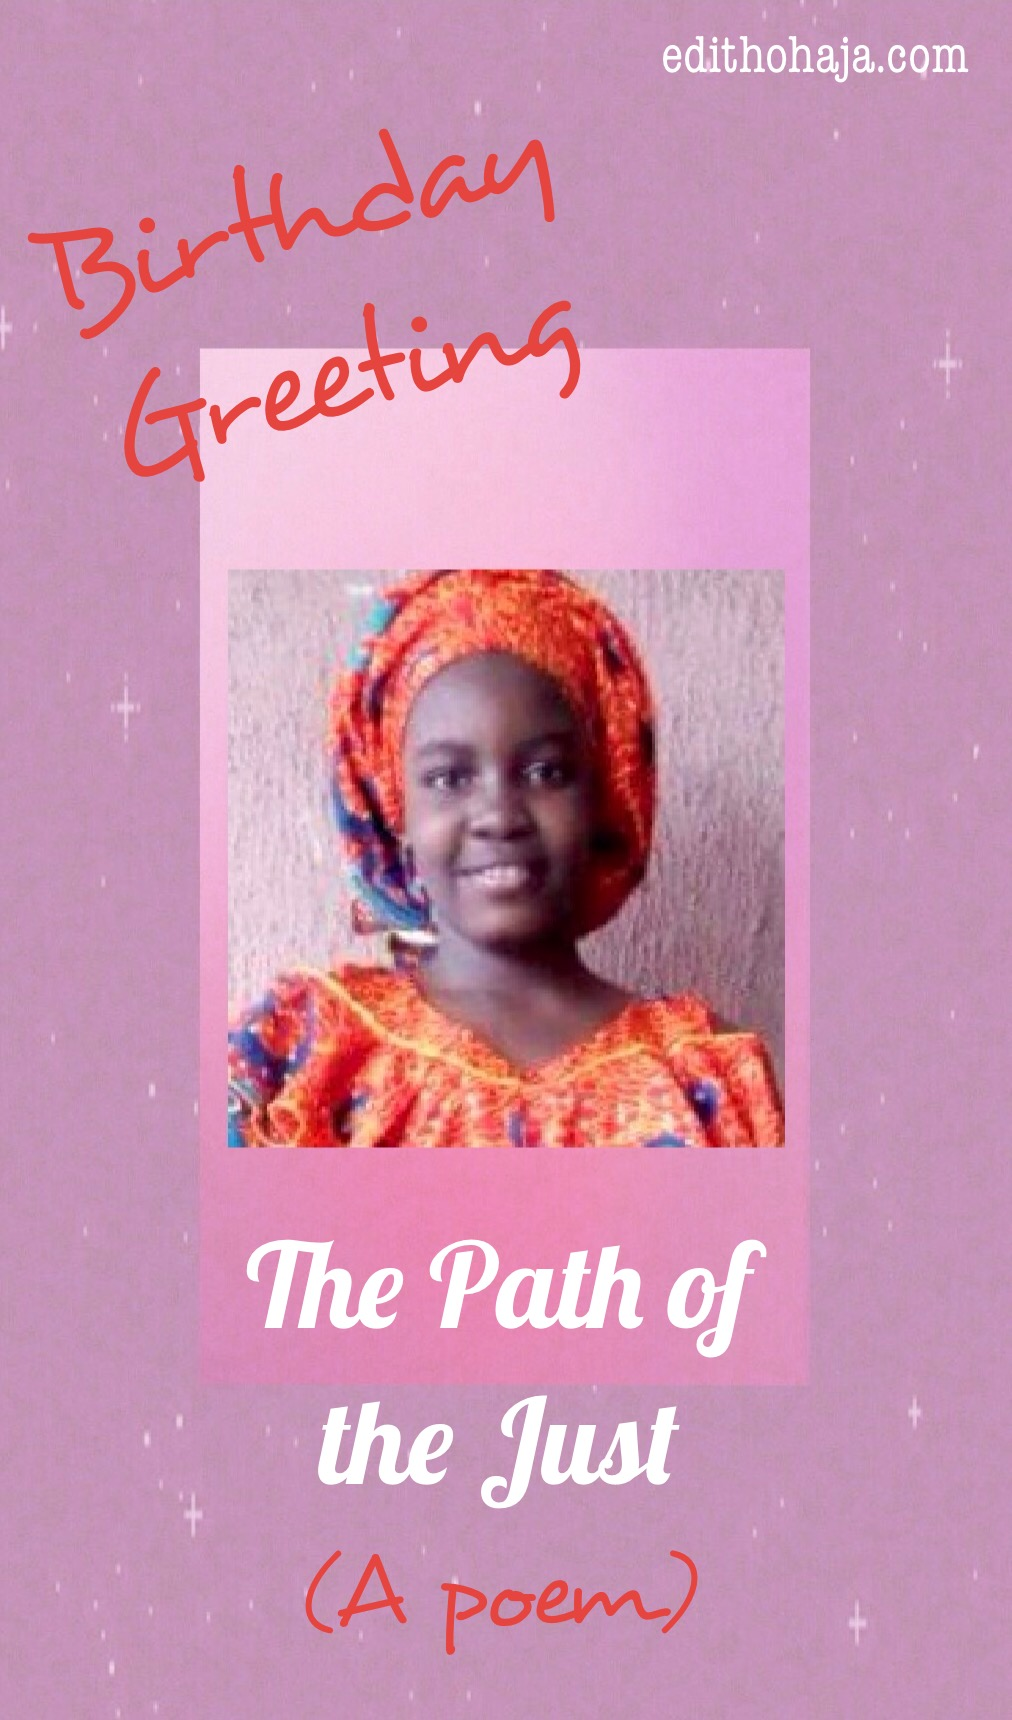 THE PATH OF THE JUST (POEM AND BIBLE VERSES)